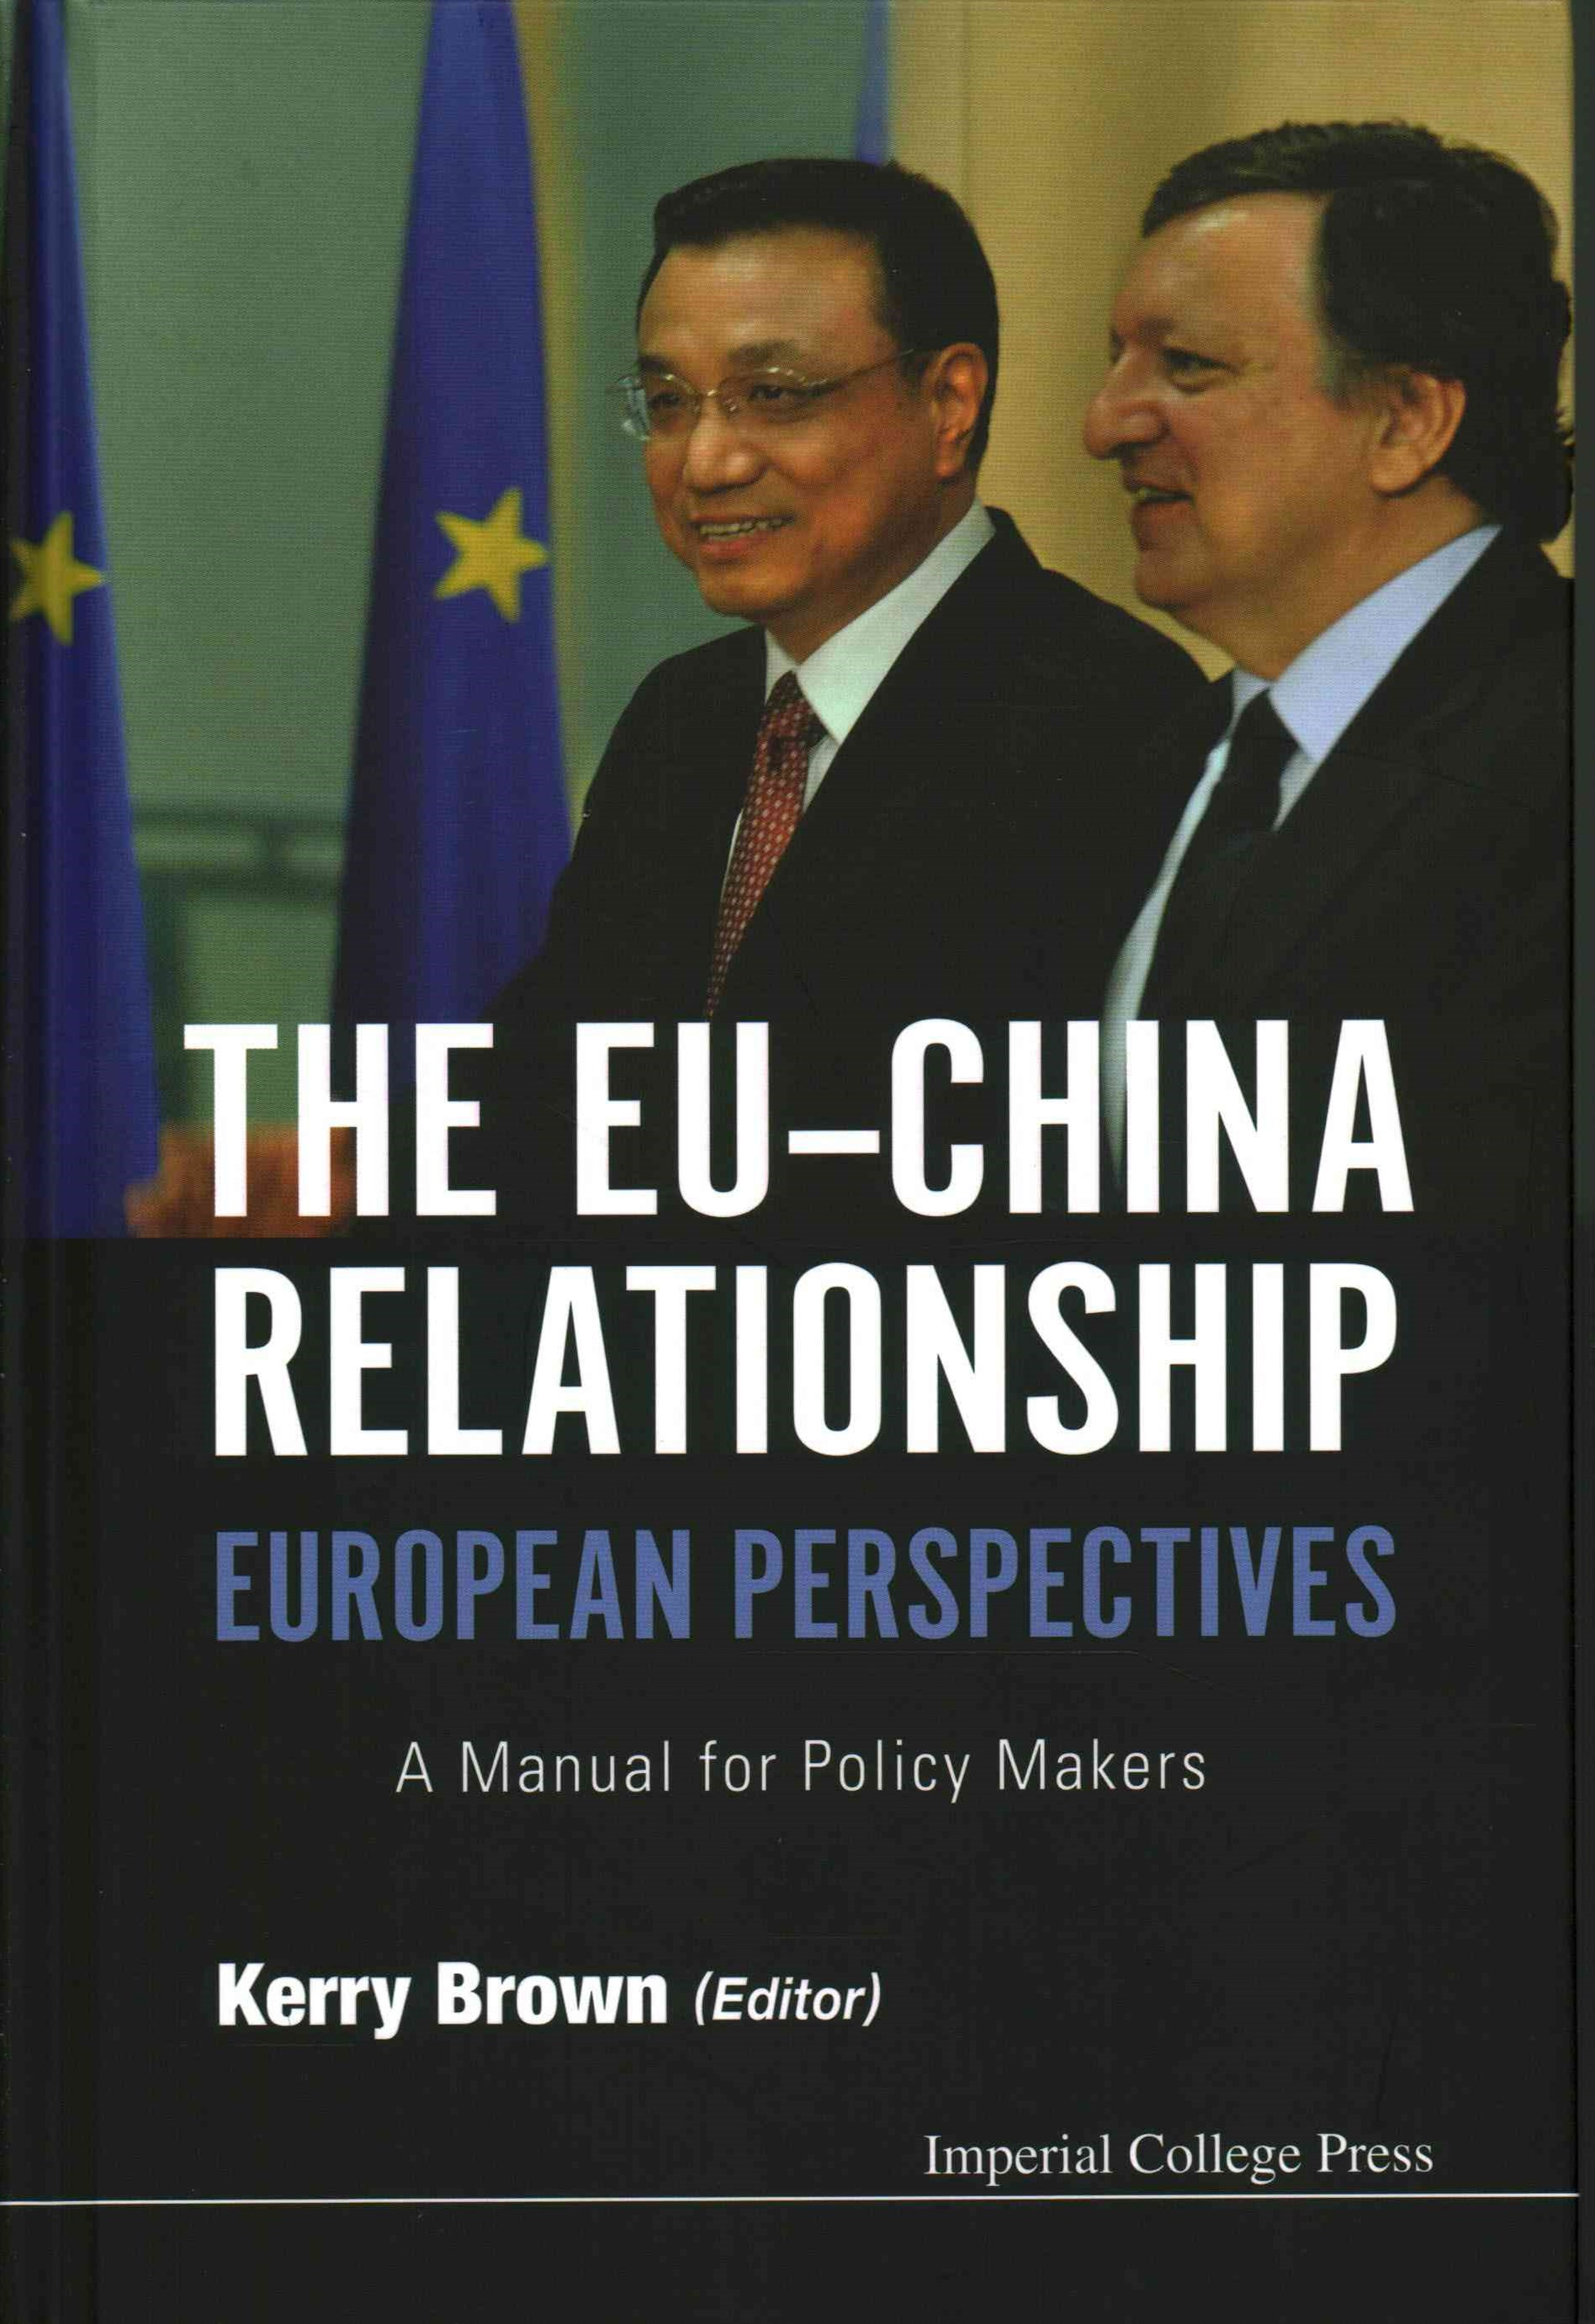 EU-China Relationship: European Perspectives